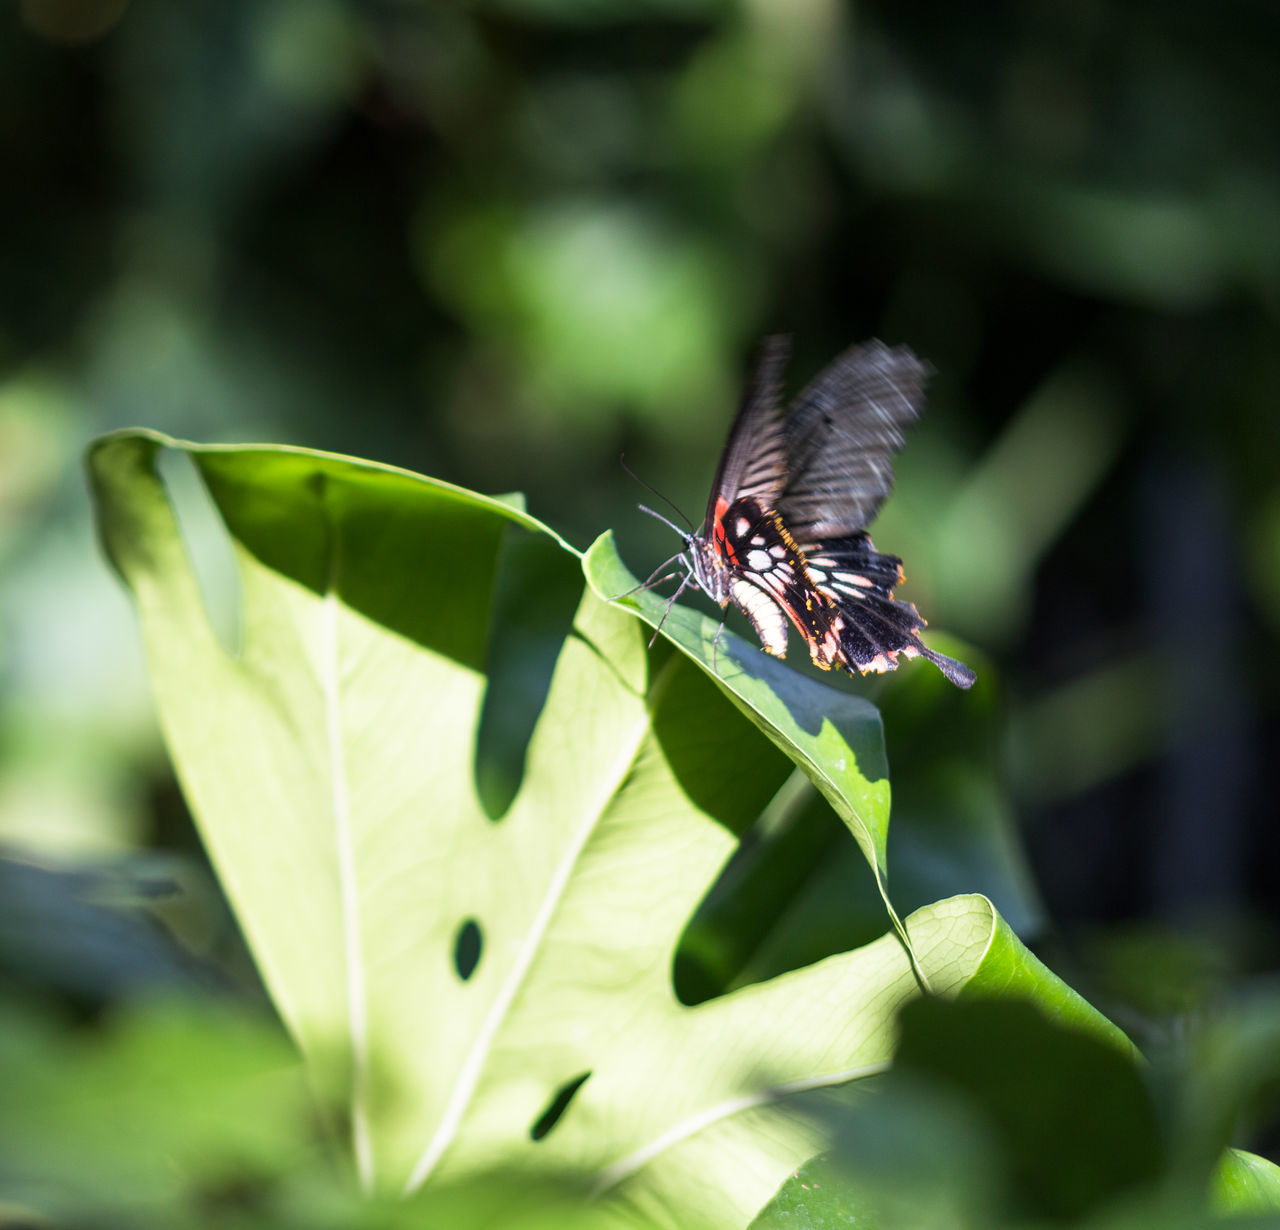 one animal, insect, animals in the wild, animal themes, green color, leaf, animal wildlife, day, close-up, outdoors, no people, nature, plant, beauty in nature, freshness